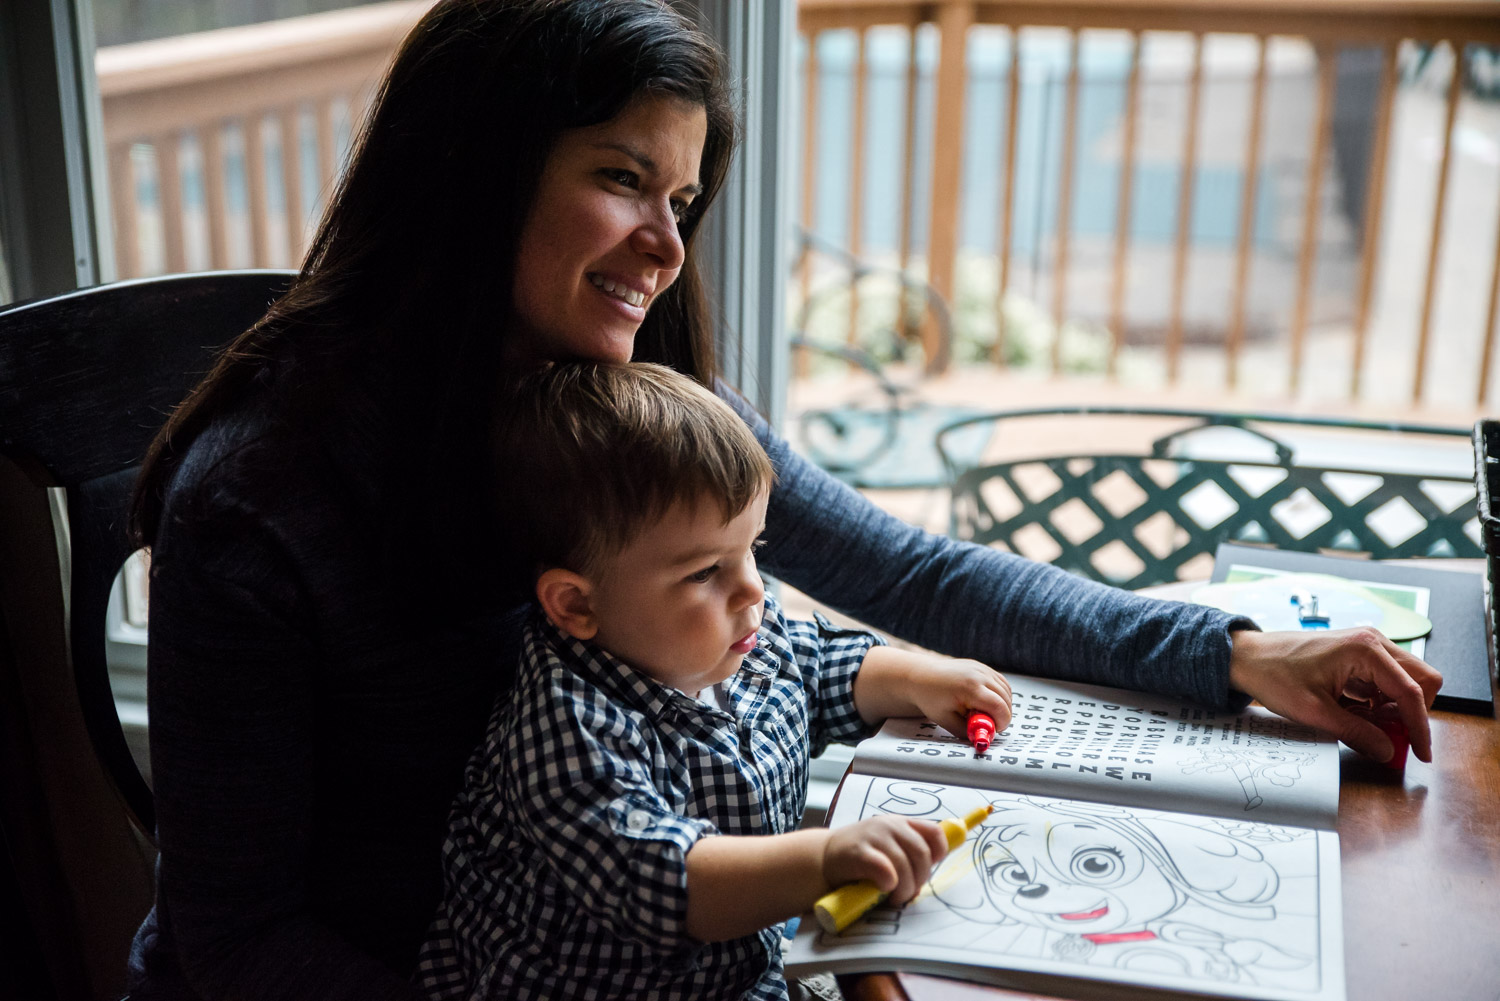 A mother sits with her toddler son while he colors.